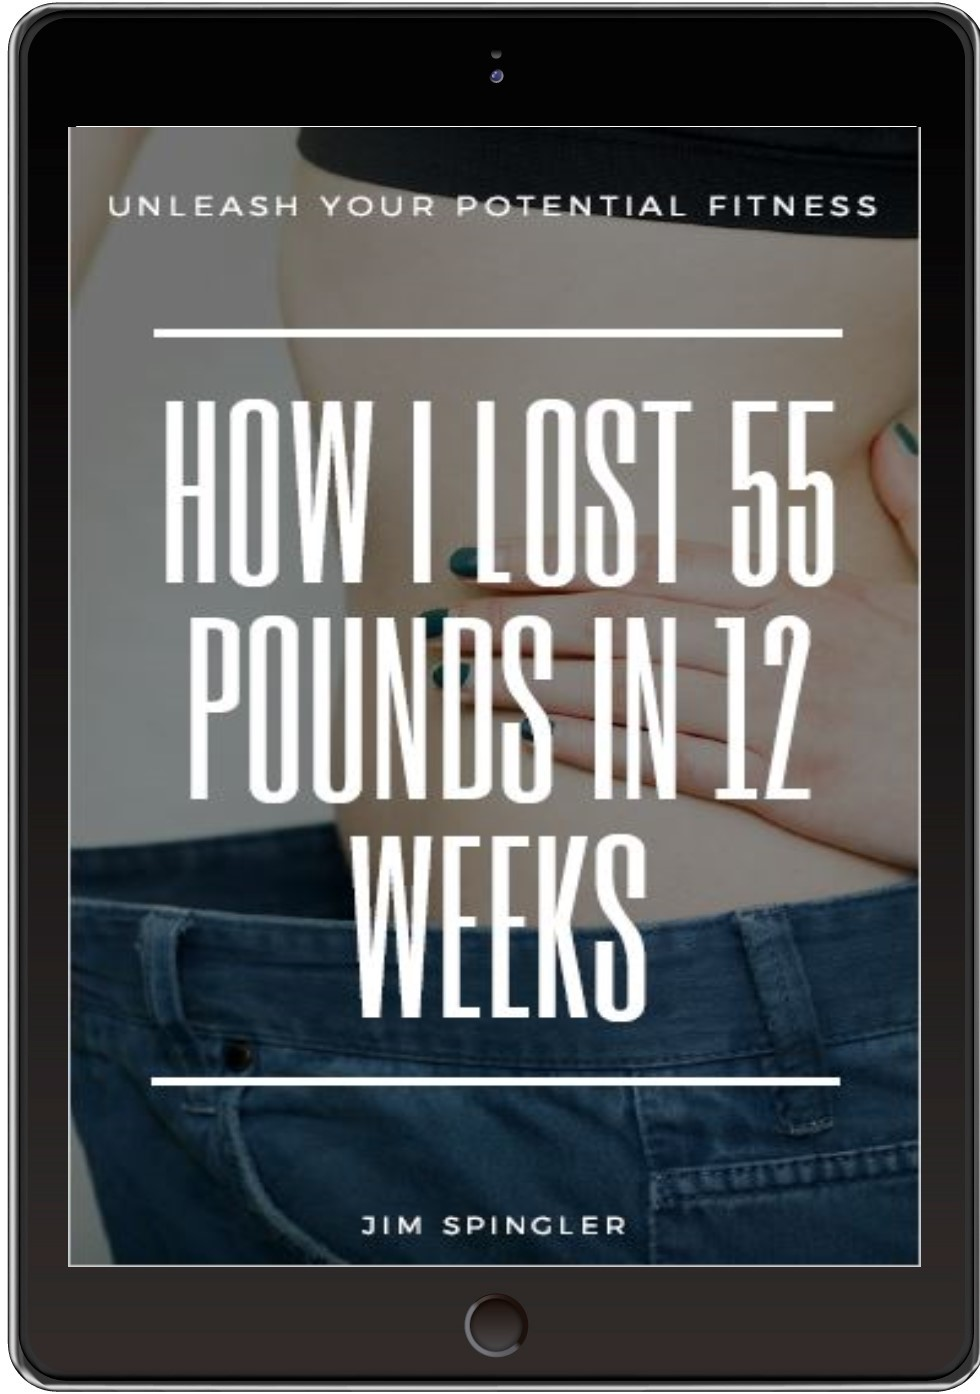 I lost 55 lbs Tablet cover pic